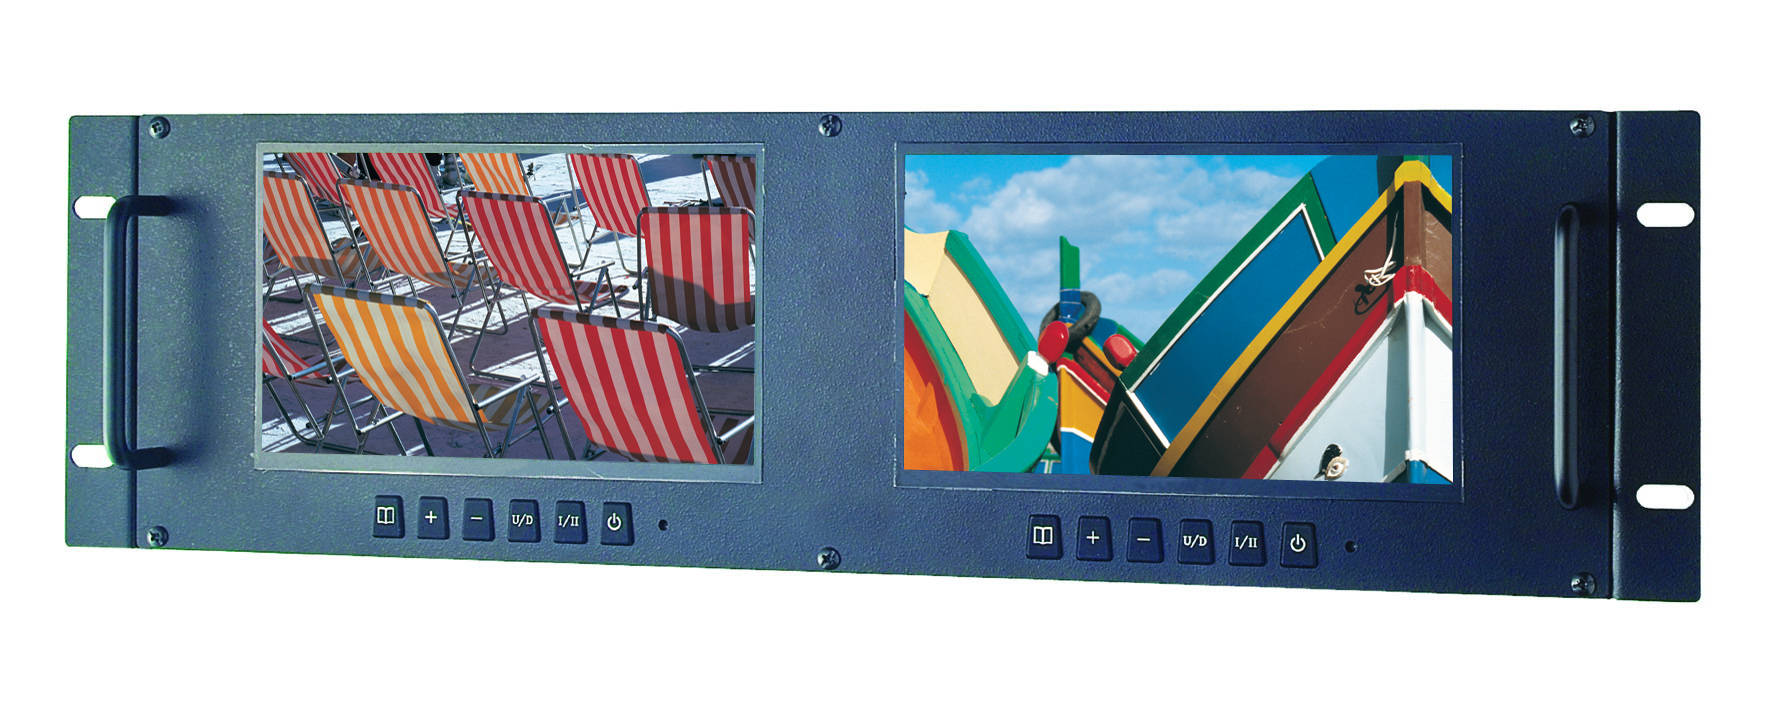 "LRM7521 2 x 7"" TFT LCD Monitors with a Colour Digital LED Backlight Panel"